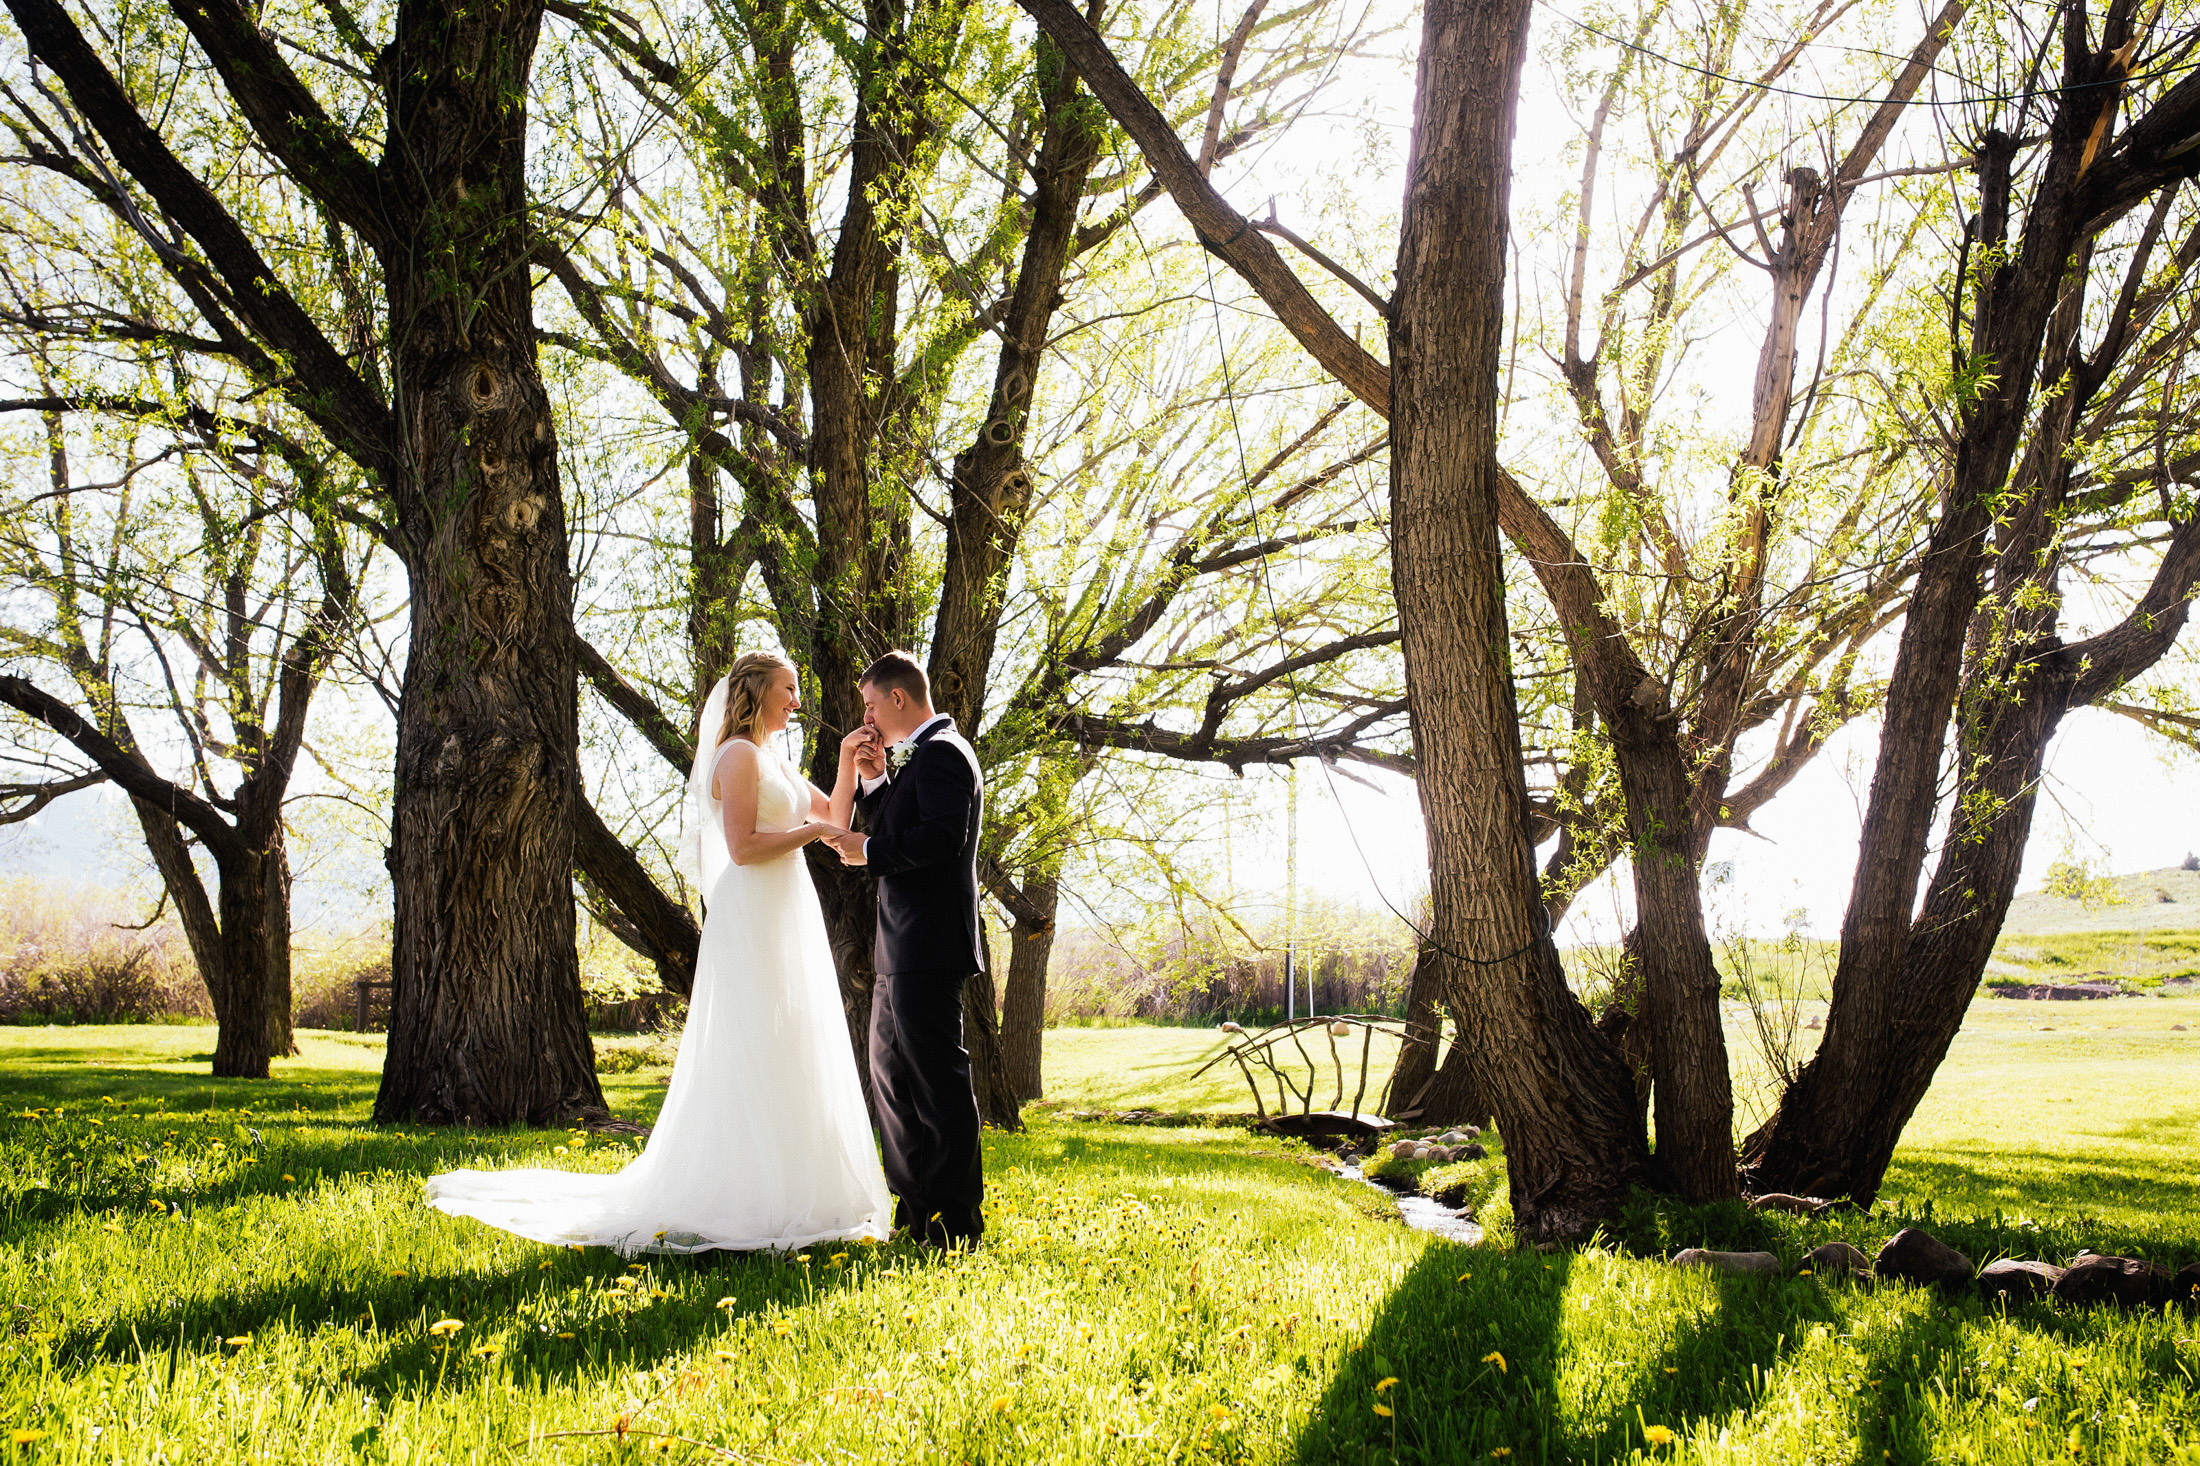 Groom kisses bride's hand underneath Willow trees.